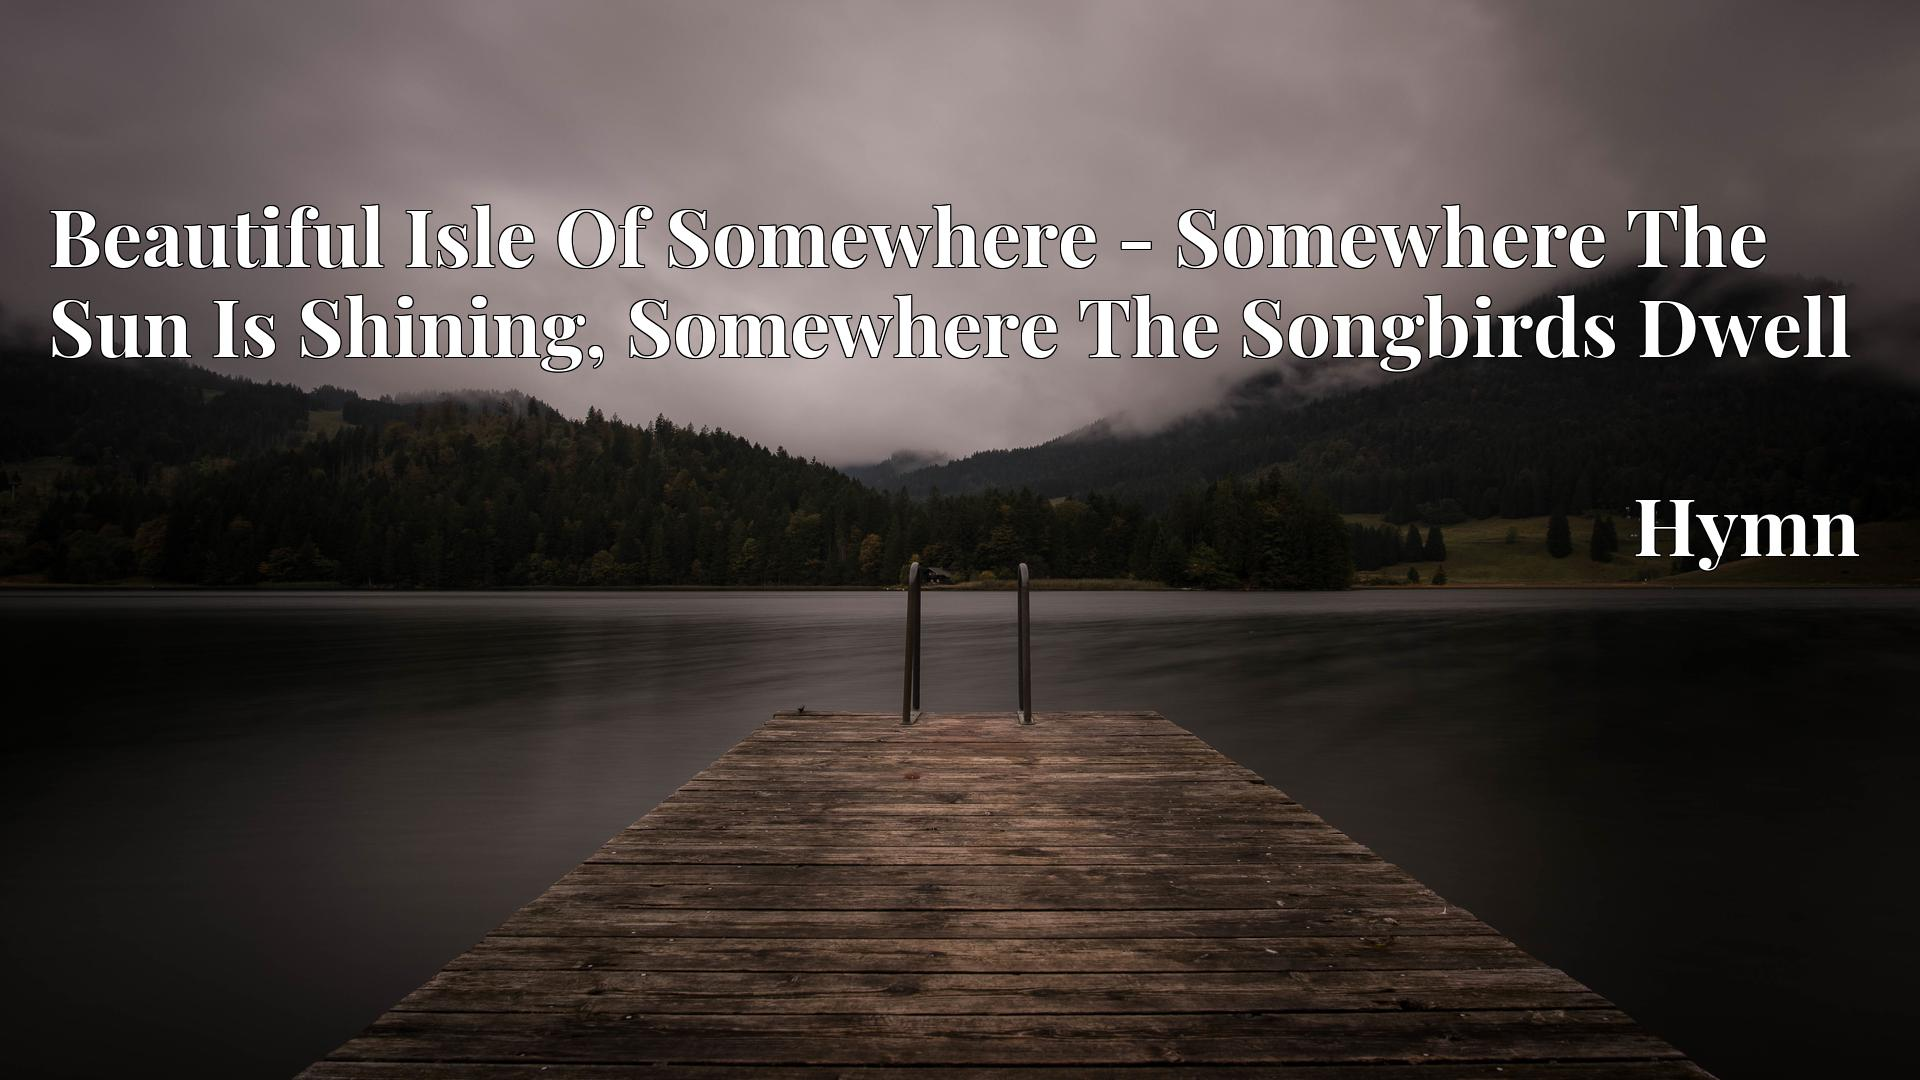 Beautiful Isle Of Somewhere - Somewhere The Sun Is Shining, Somewhere The Songbirds Dwell - Hymn